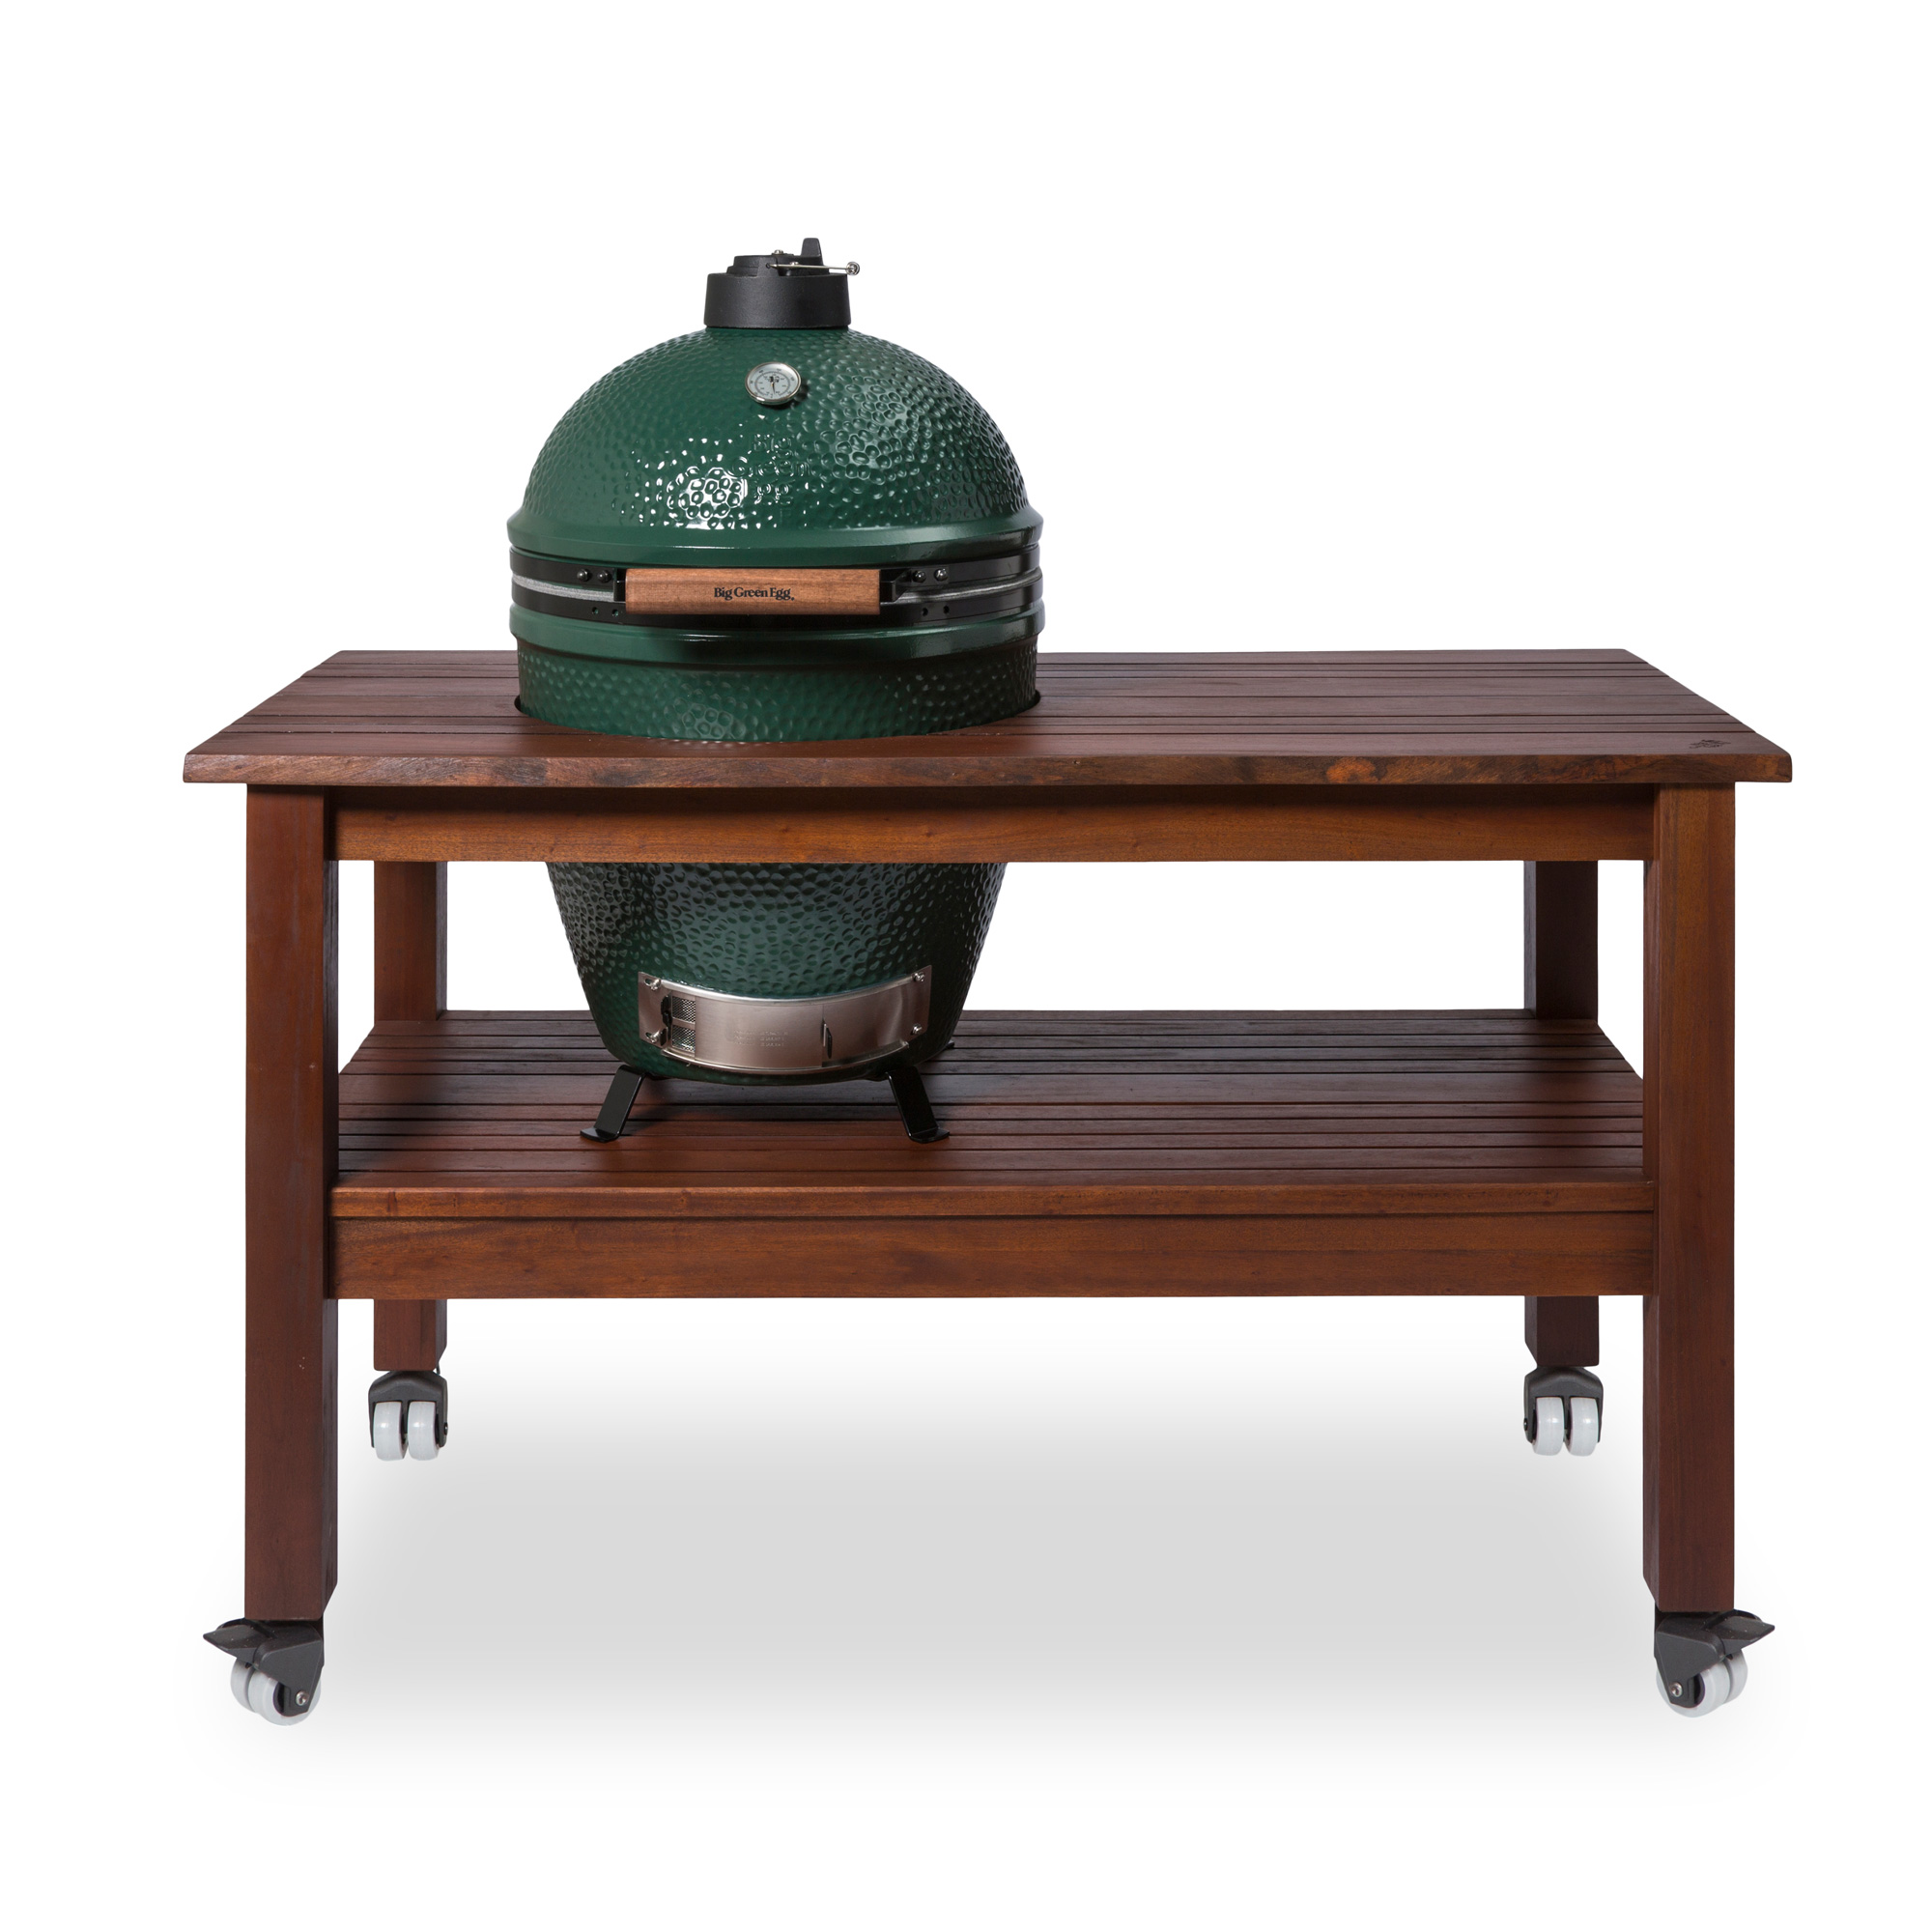 Outdoor Küche Mit Green Egg Royal Mahongani Tisch Für Large Online Shop Big Green